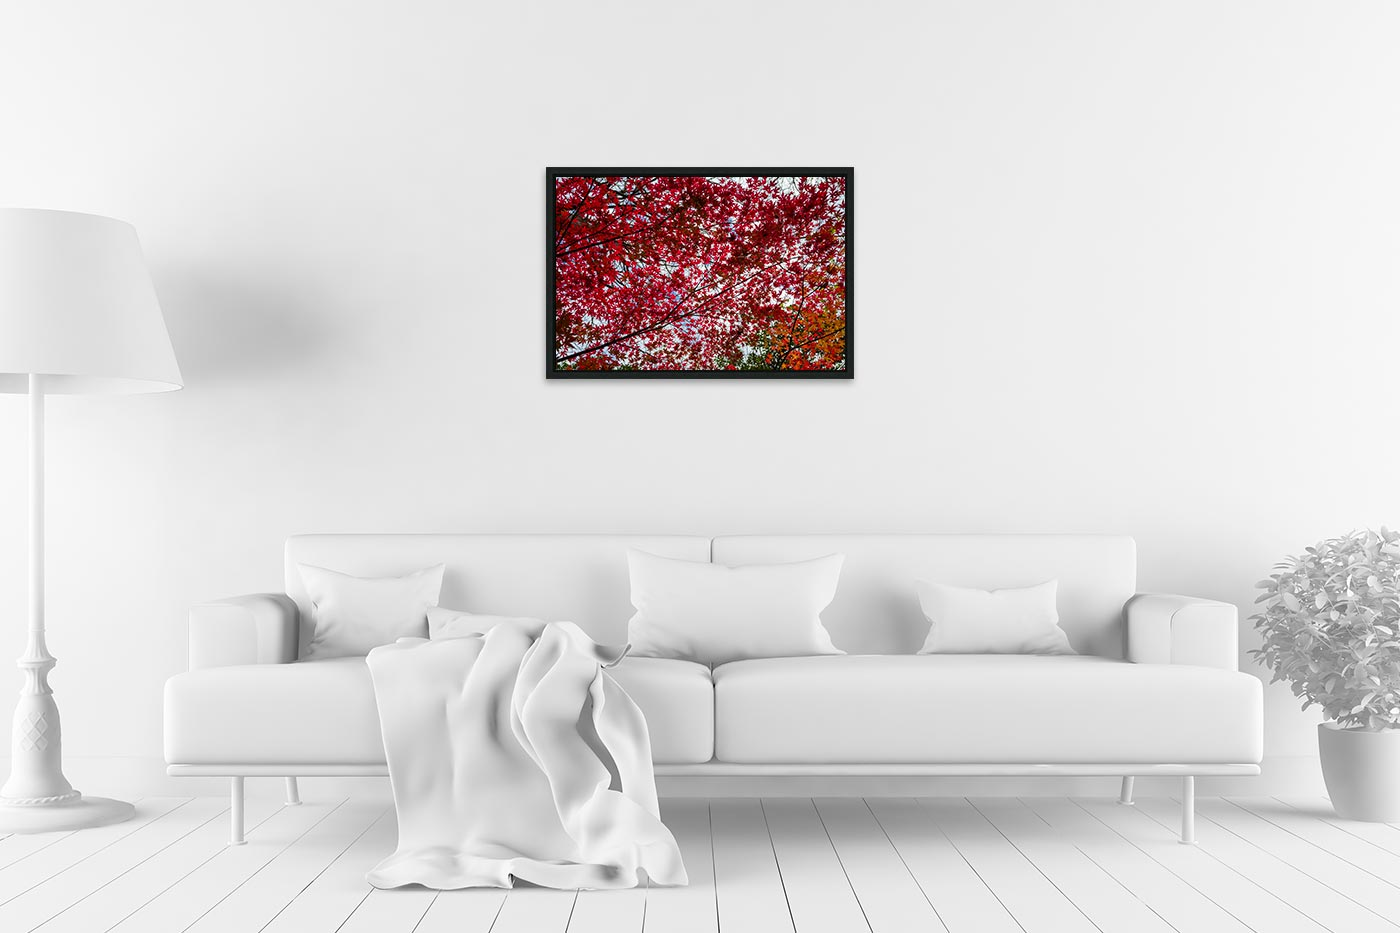 Caisse americaine 40x60 Small red tree leaves